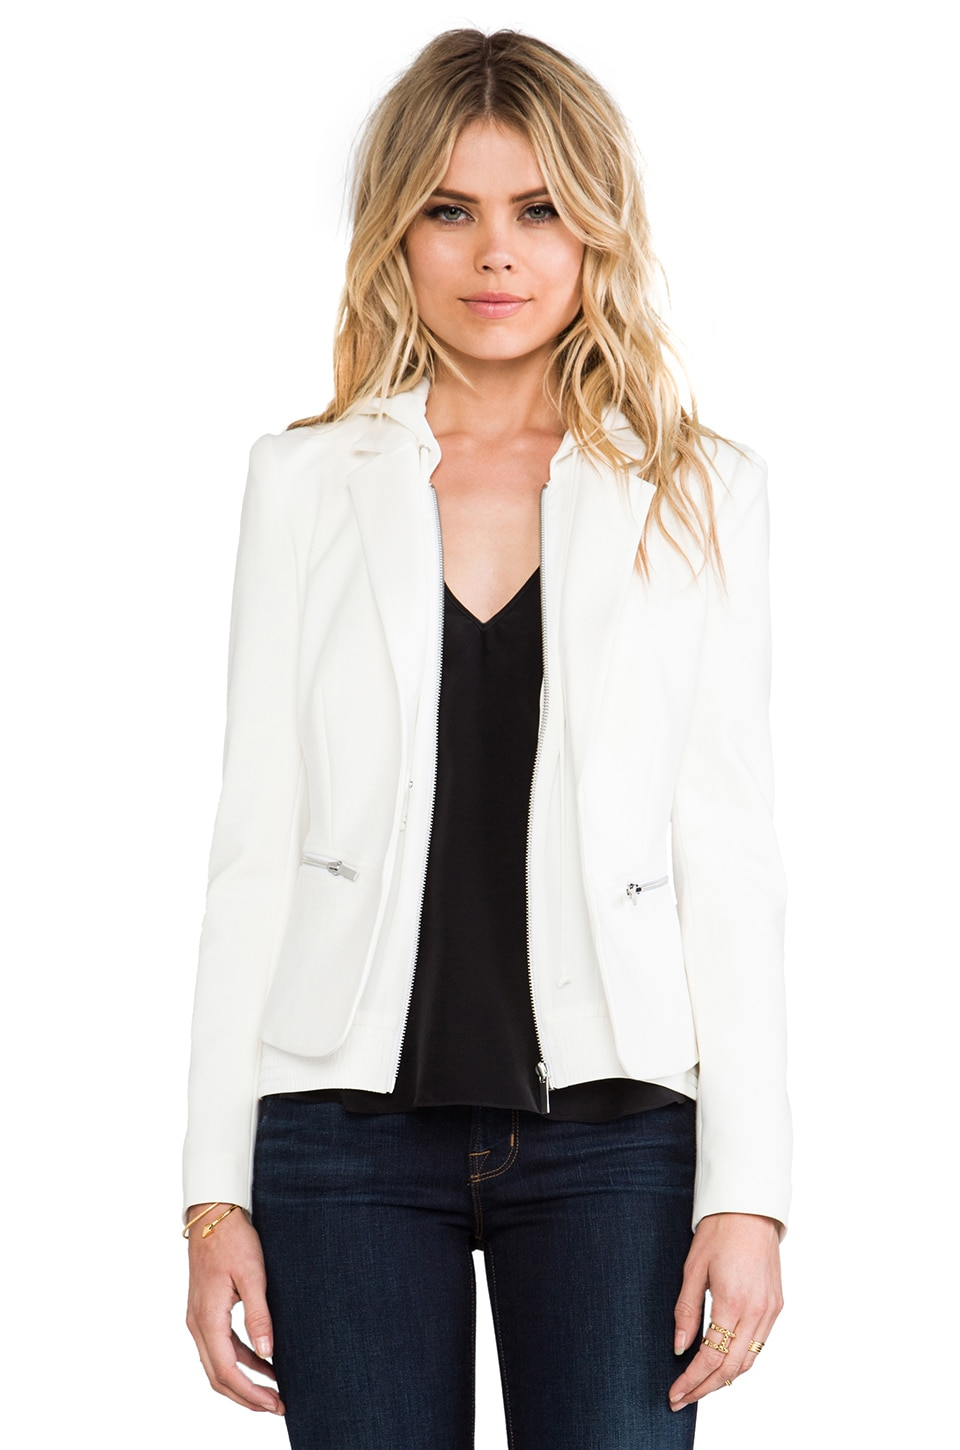 Elizabeth and James Suzie Jacket in Ivory & Ivory